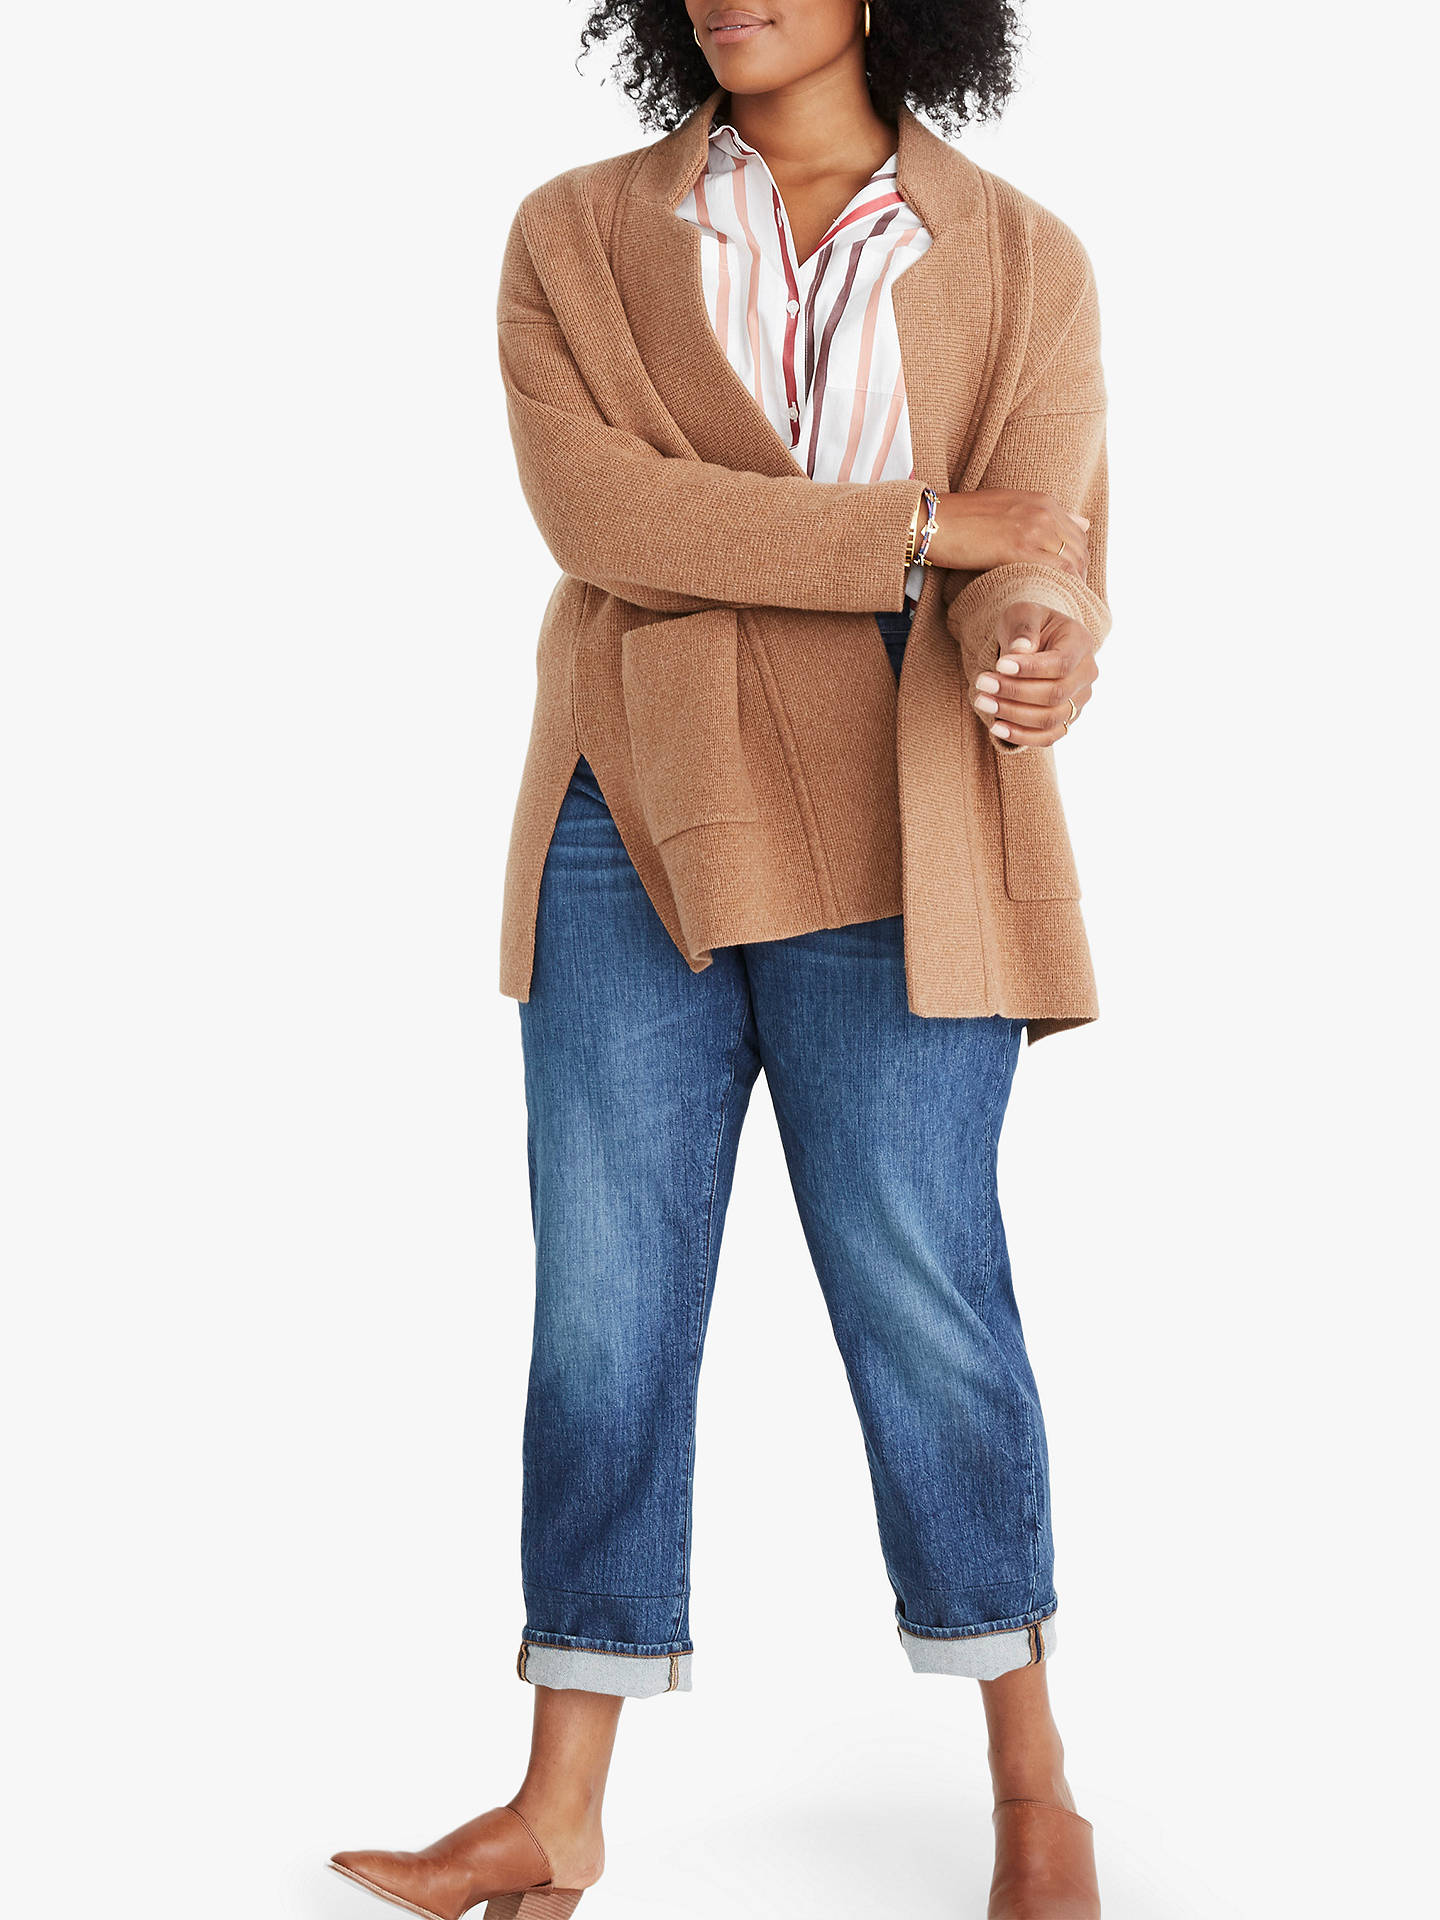 BuyMadewell Hester Merino Wool Rich Sweater Coat, Heather Caramel, S Online at johnlewis.com